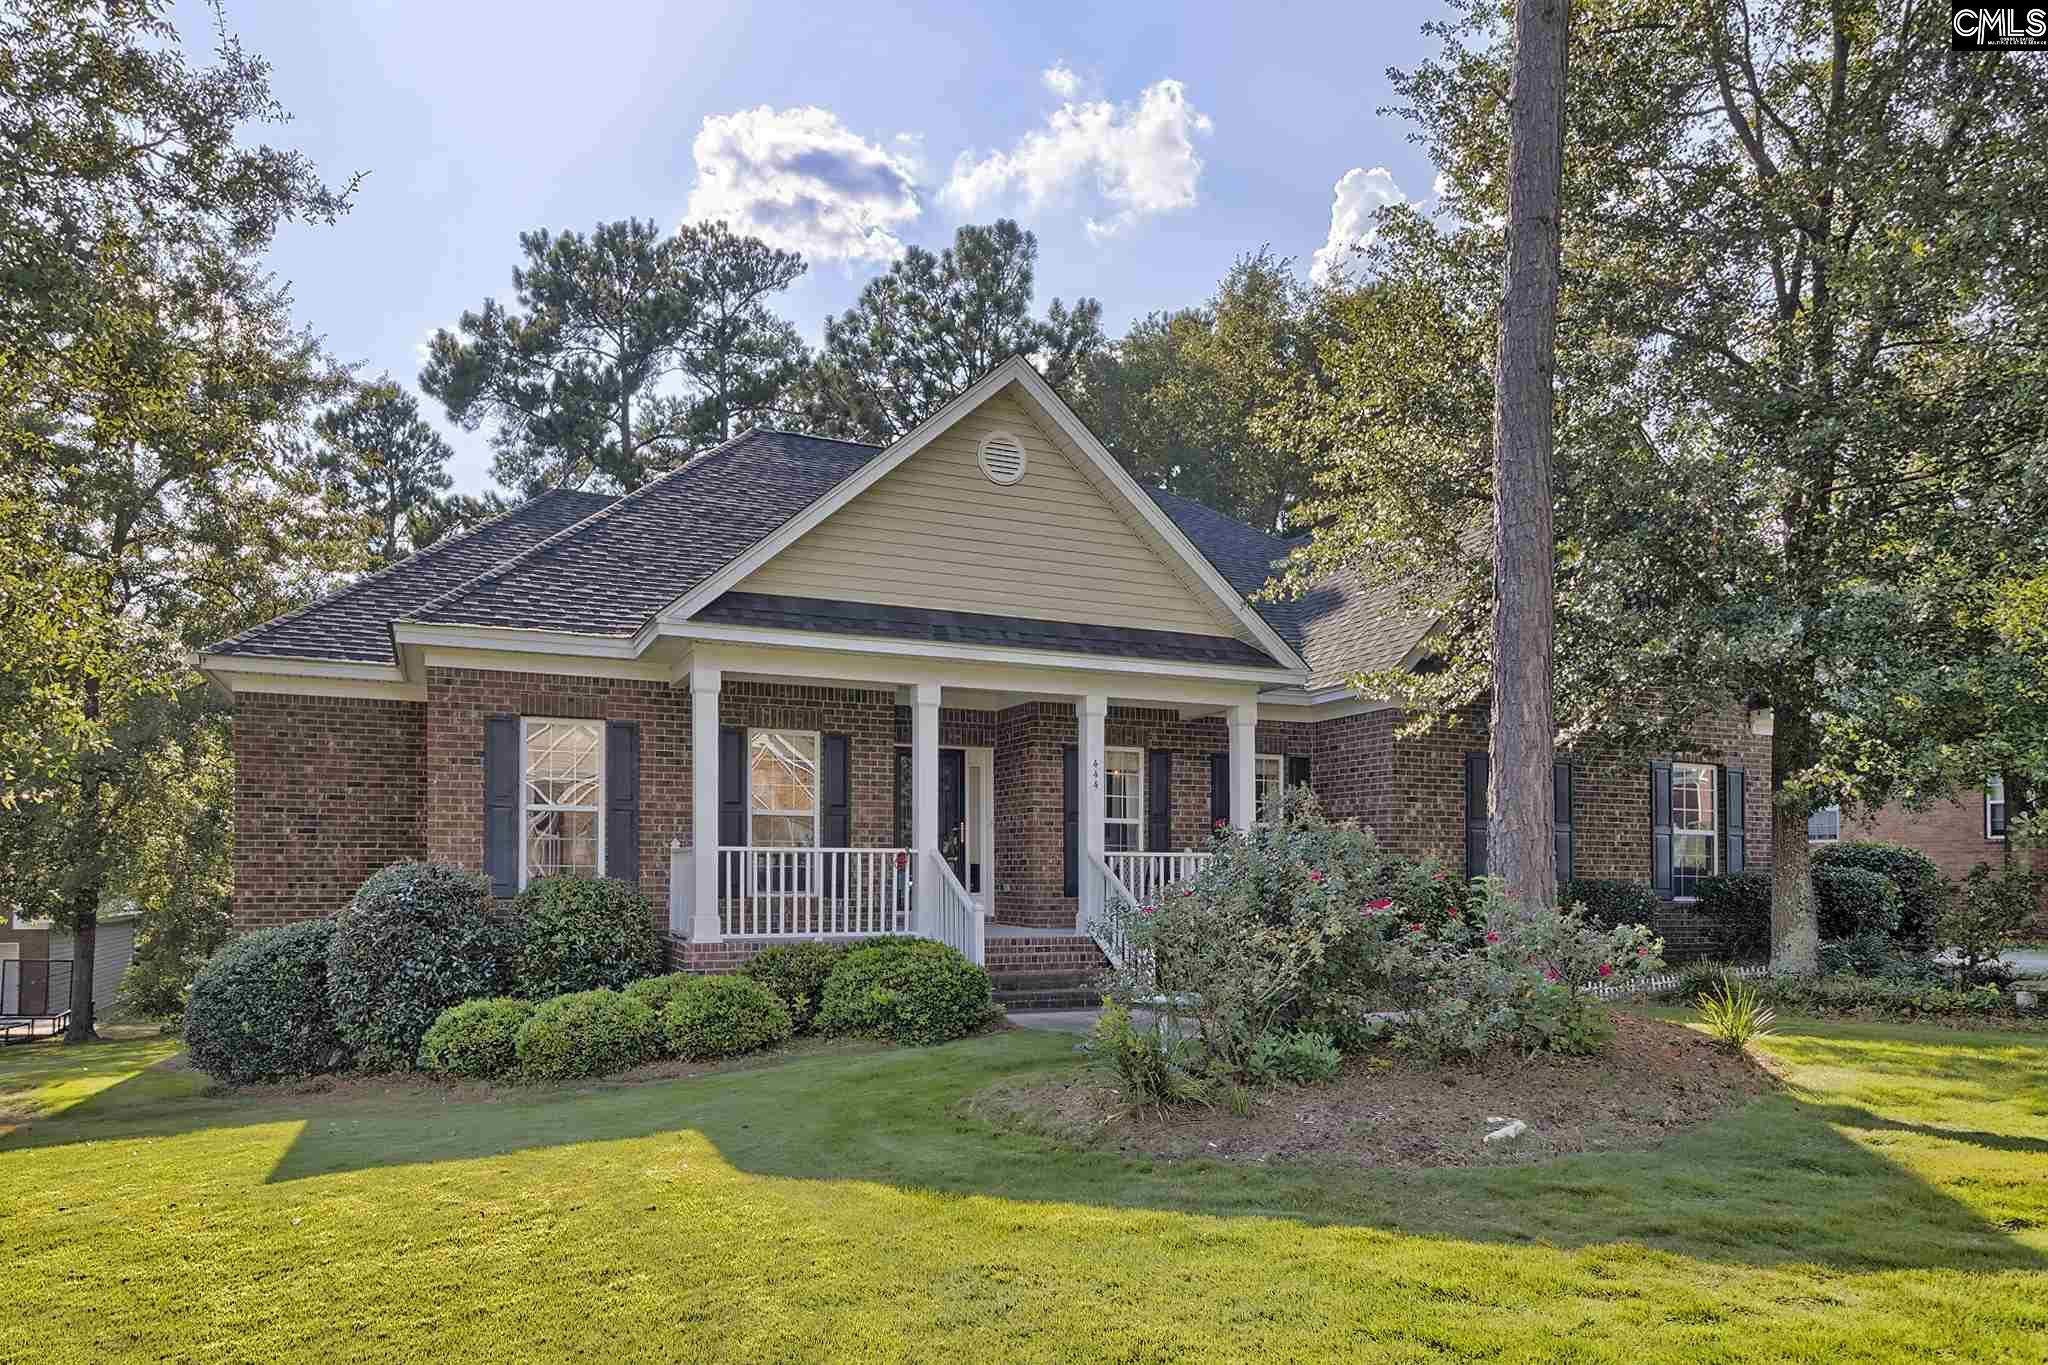 444 Golden Eagle Blythewood, SC 29016-6101